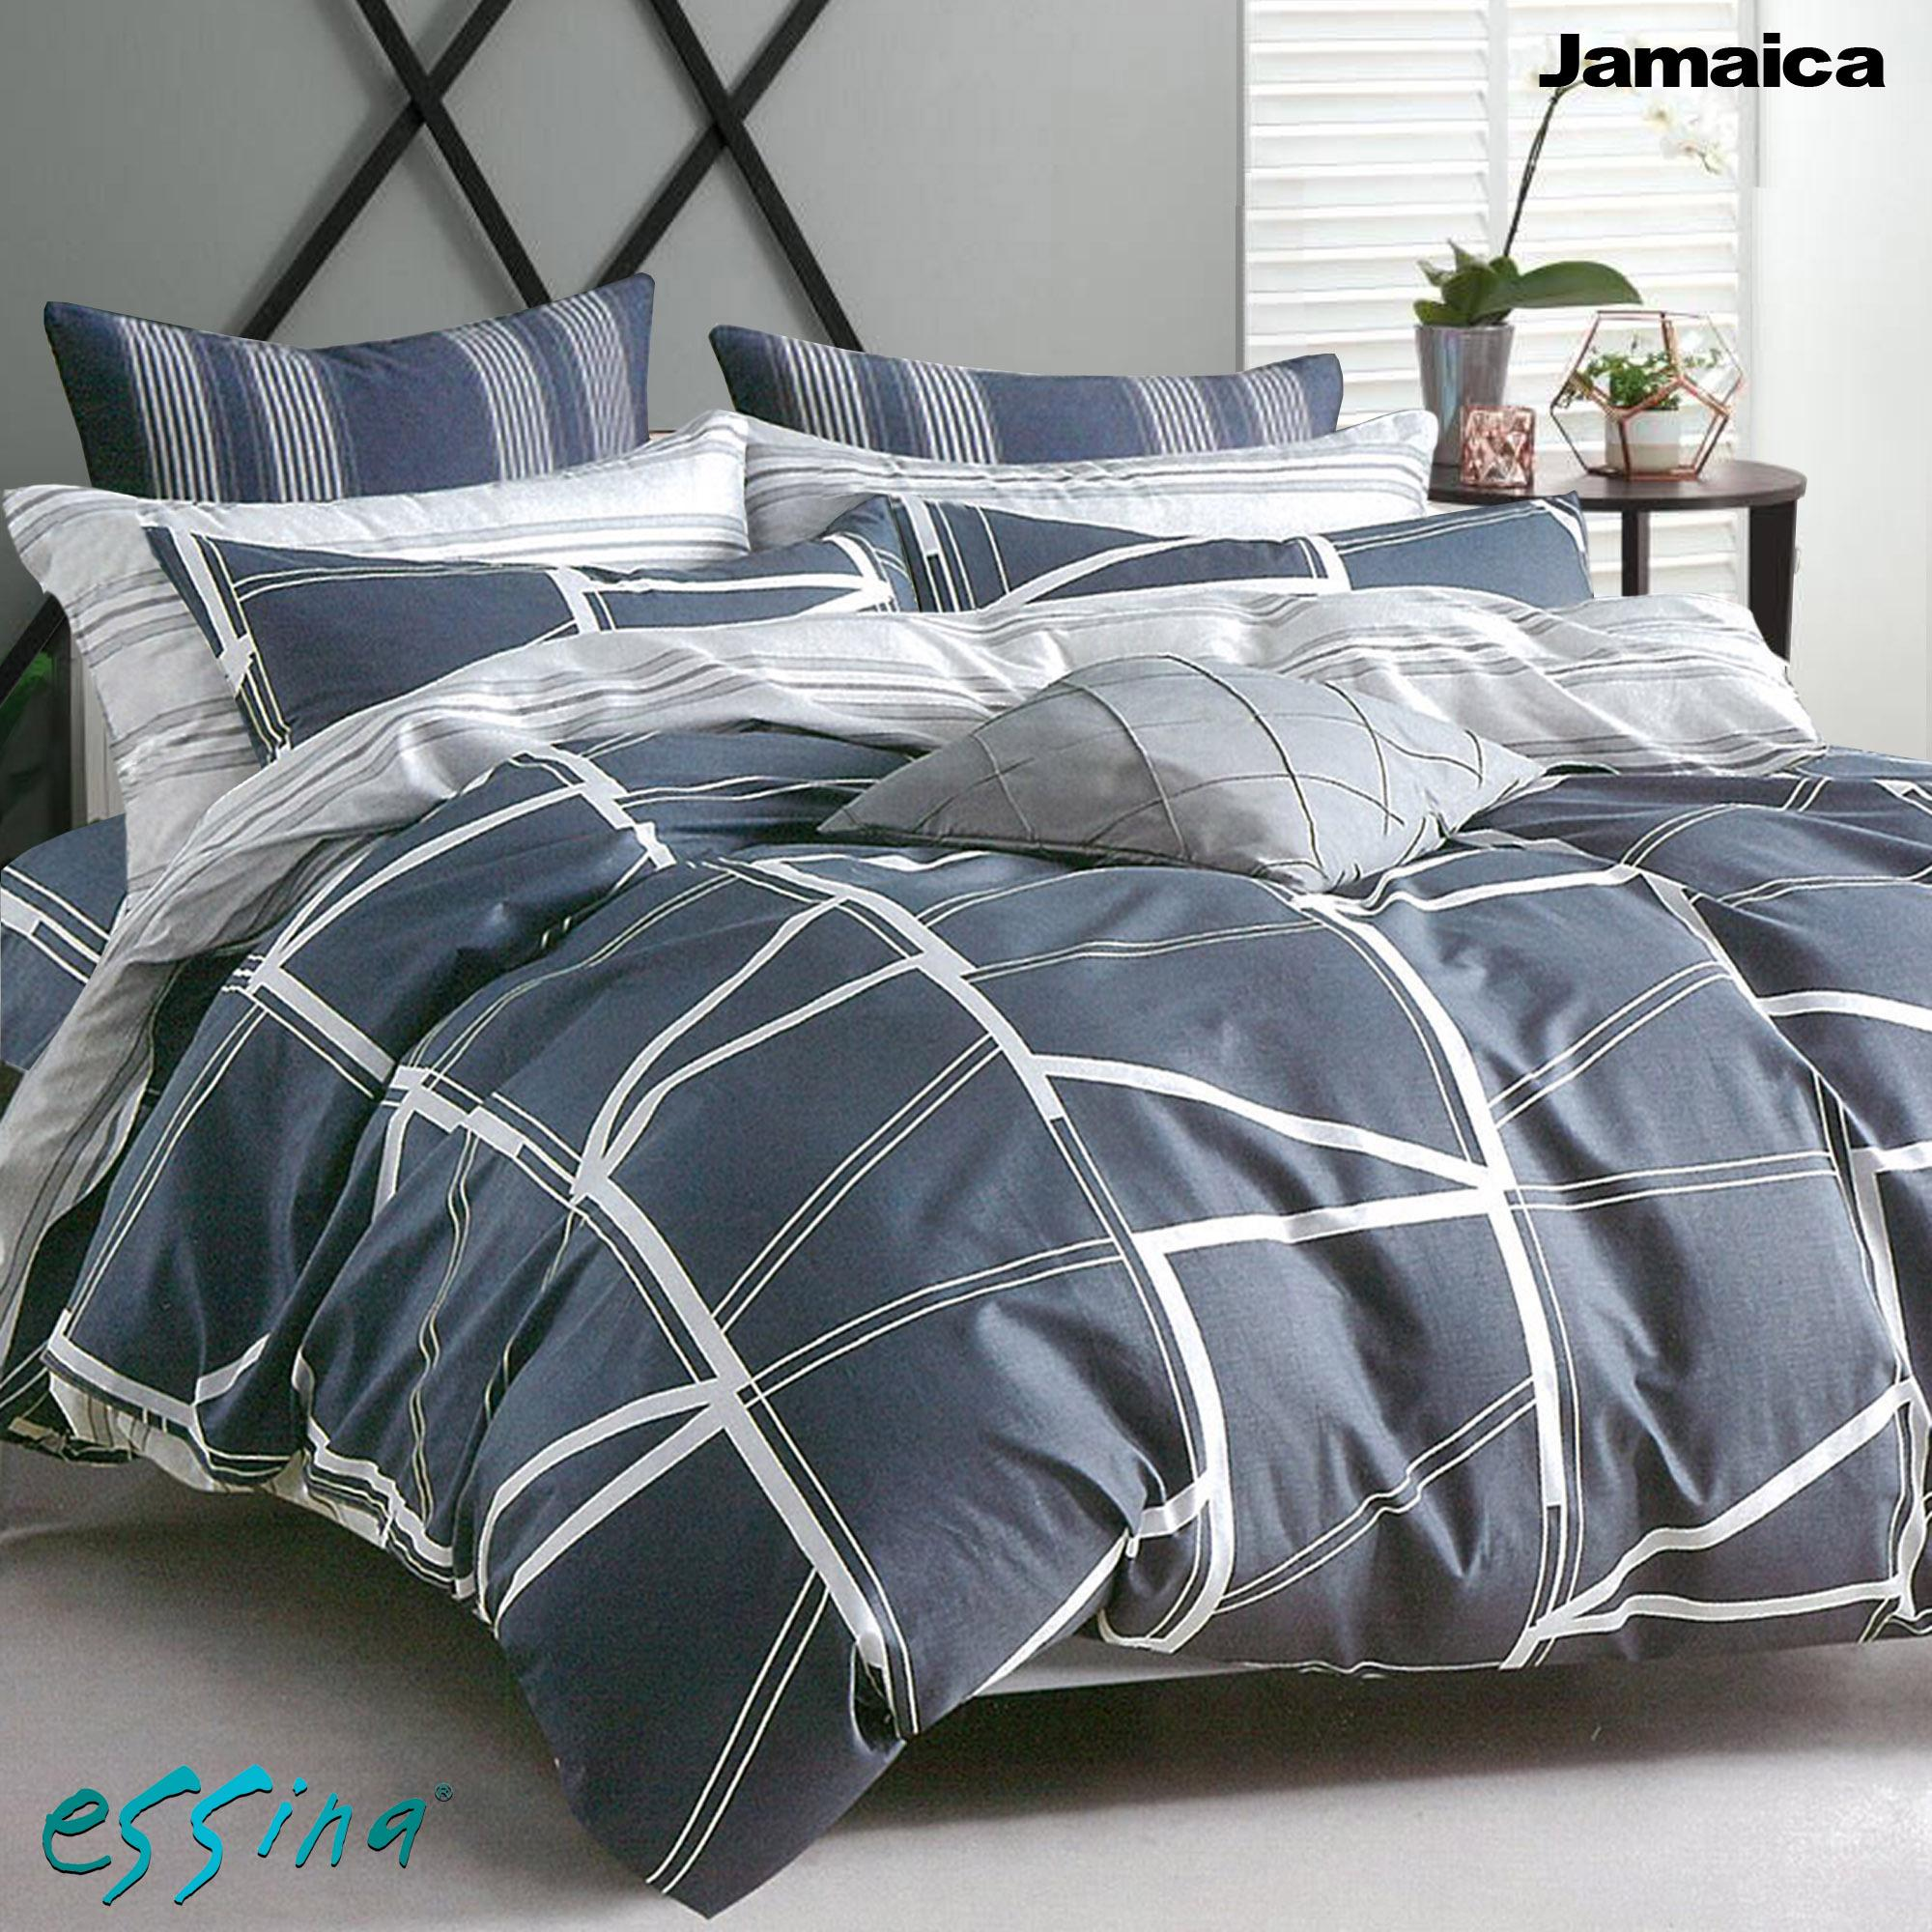 Discounted Essina Jamaica 100 Cotton Fitted Bedsheet Set